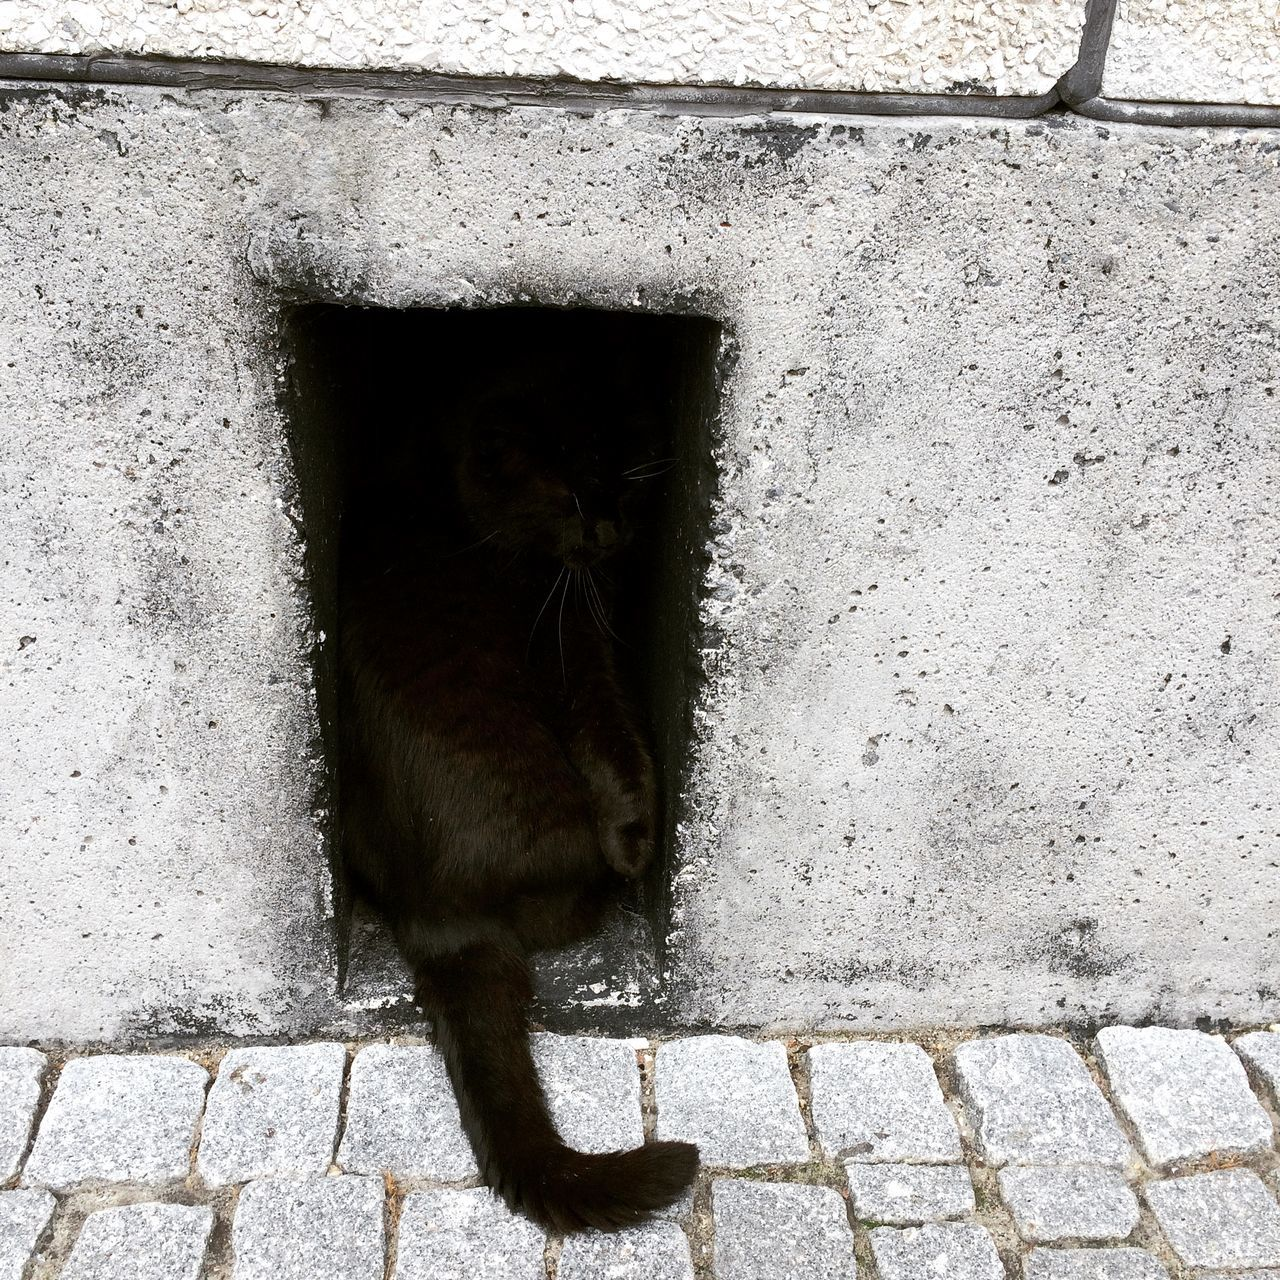 Rear View Of A Cat On The Wall